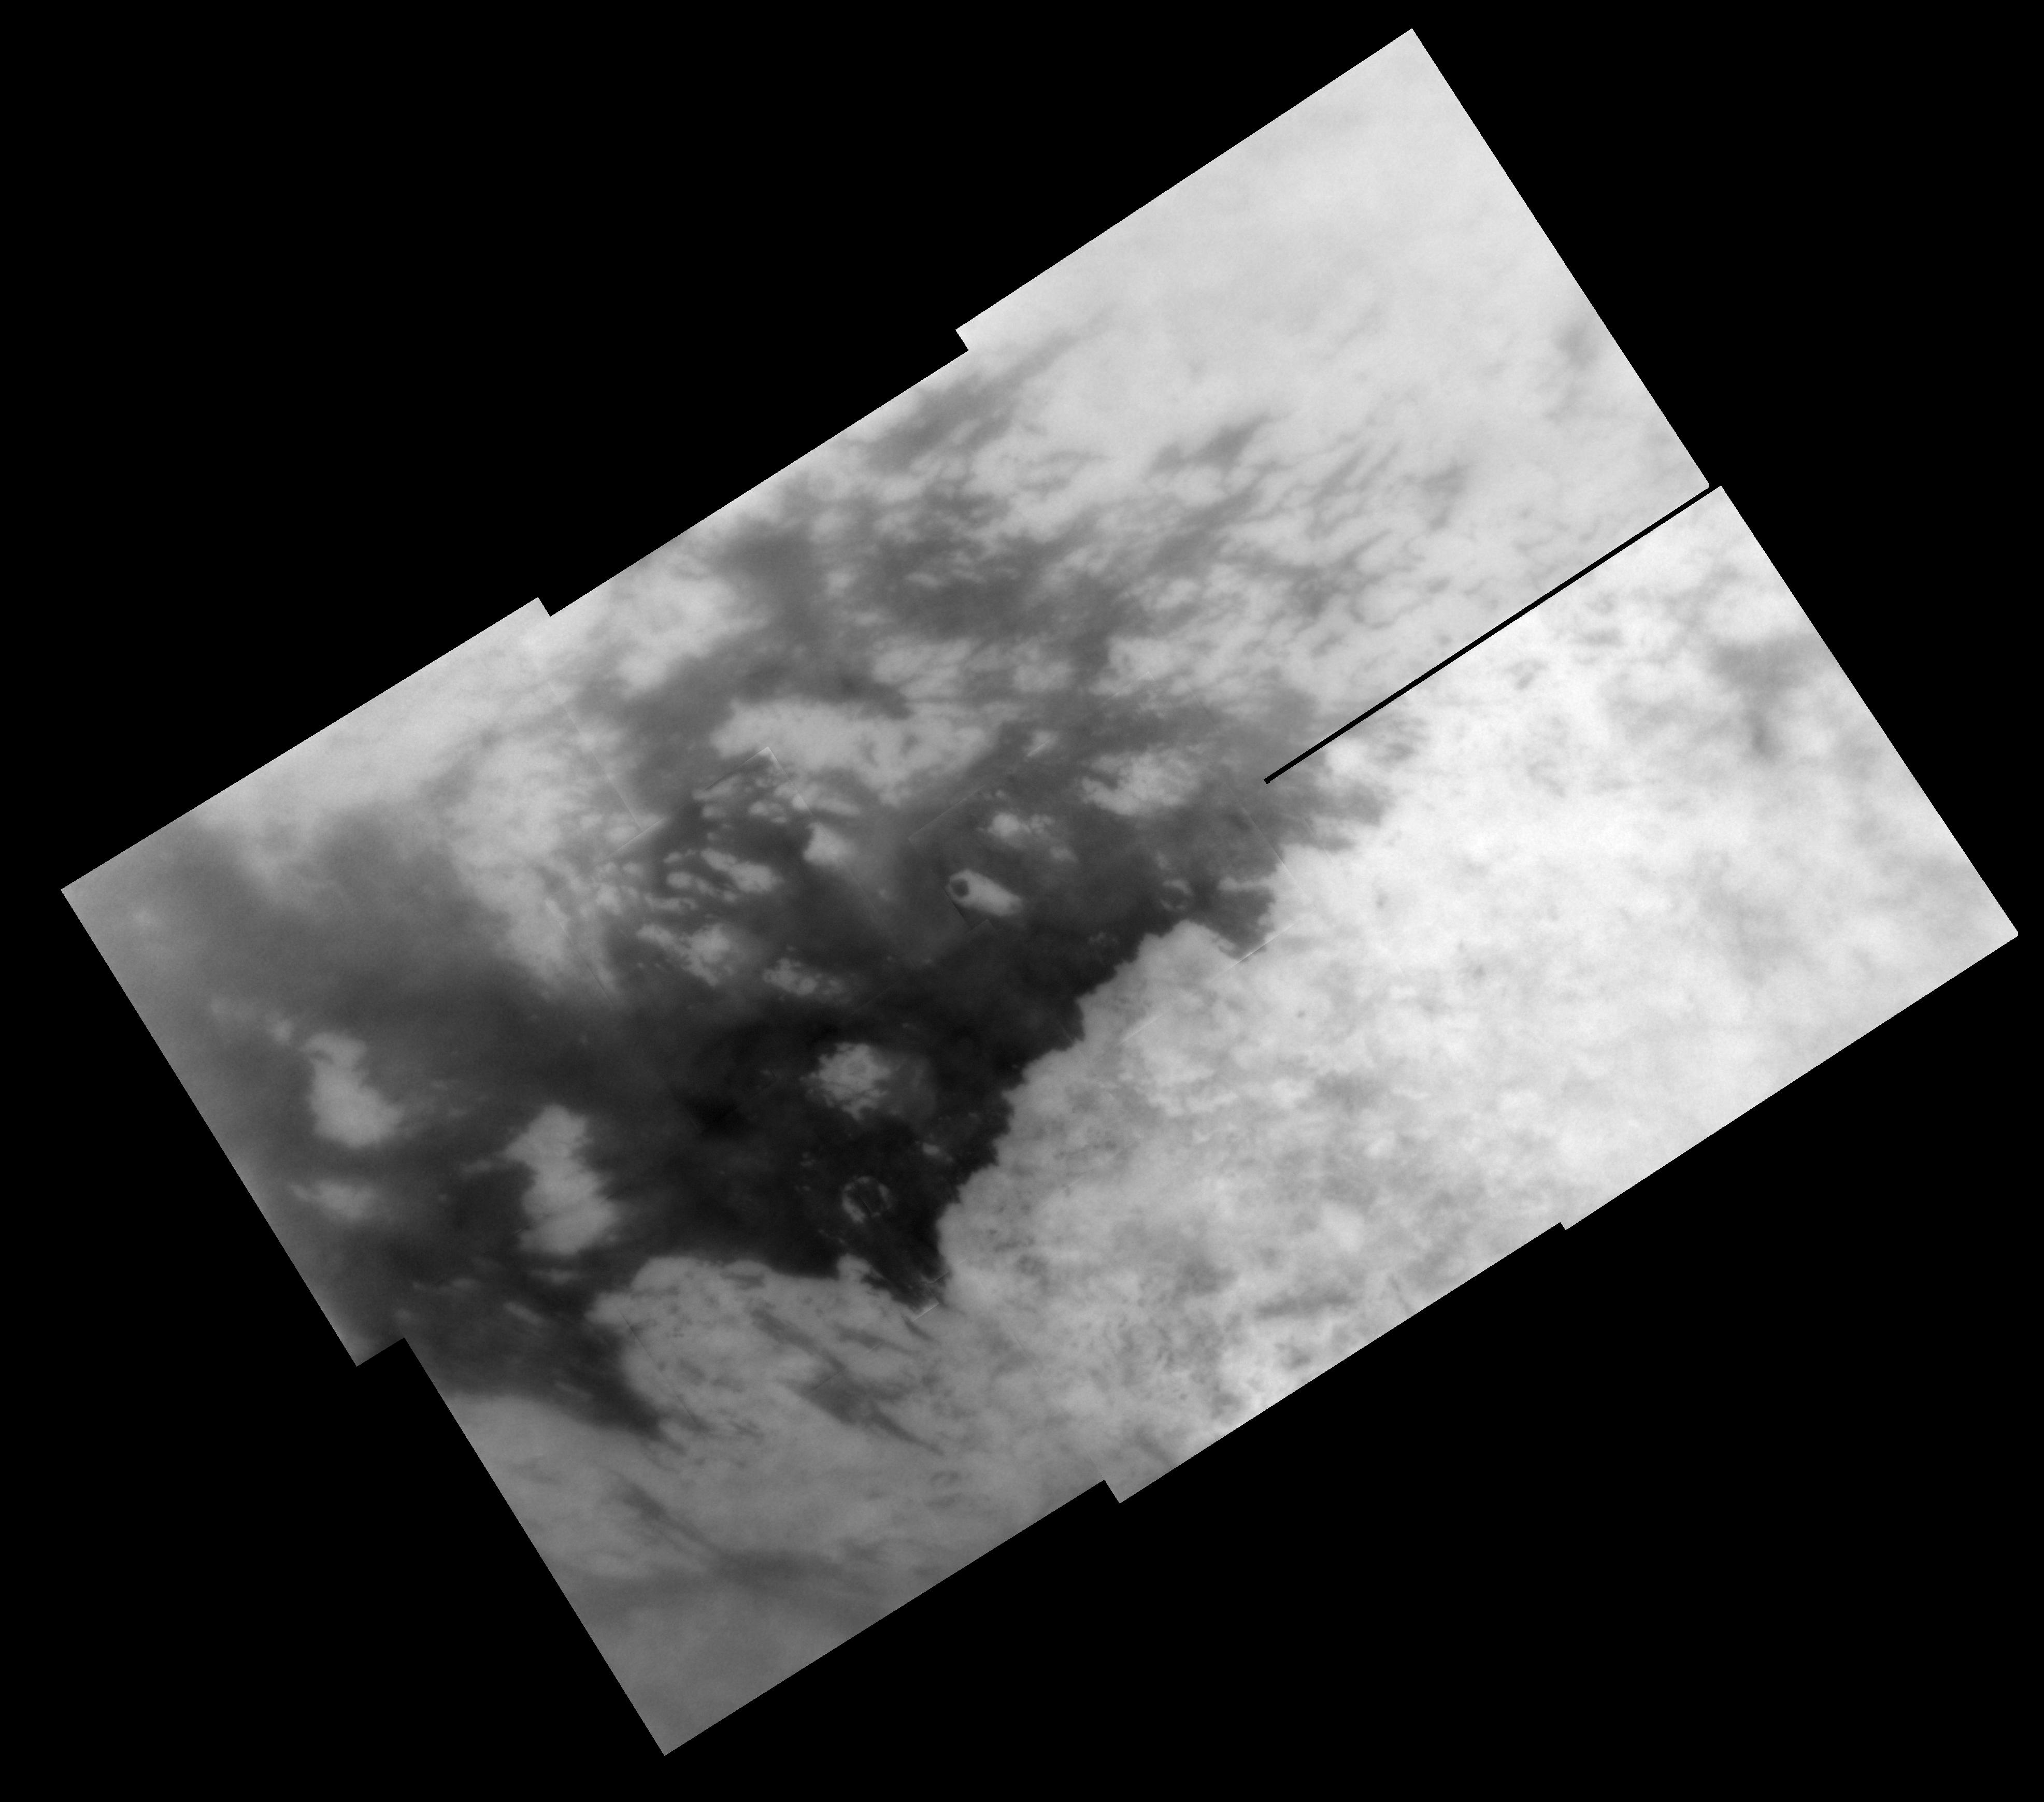 Mosaic of Titan